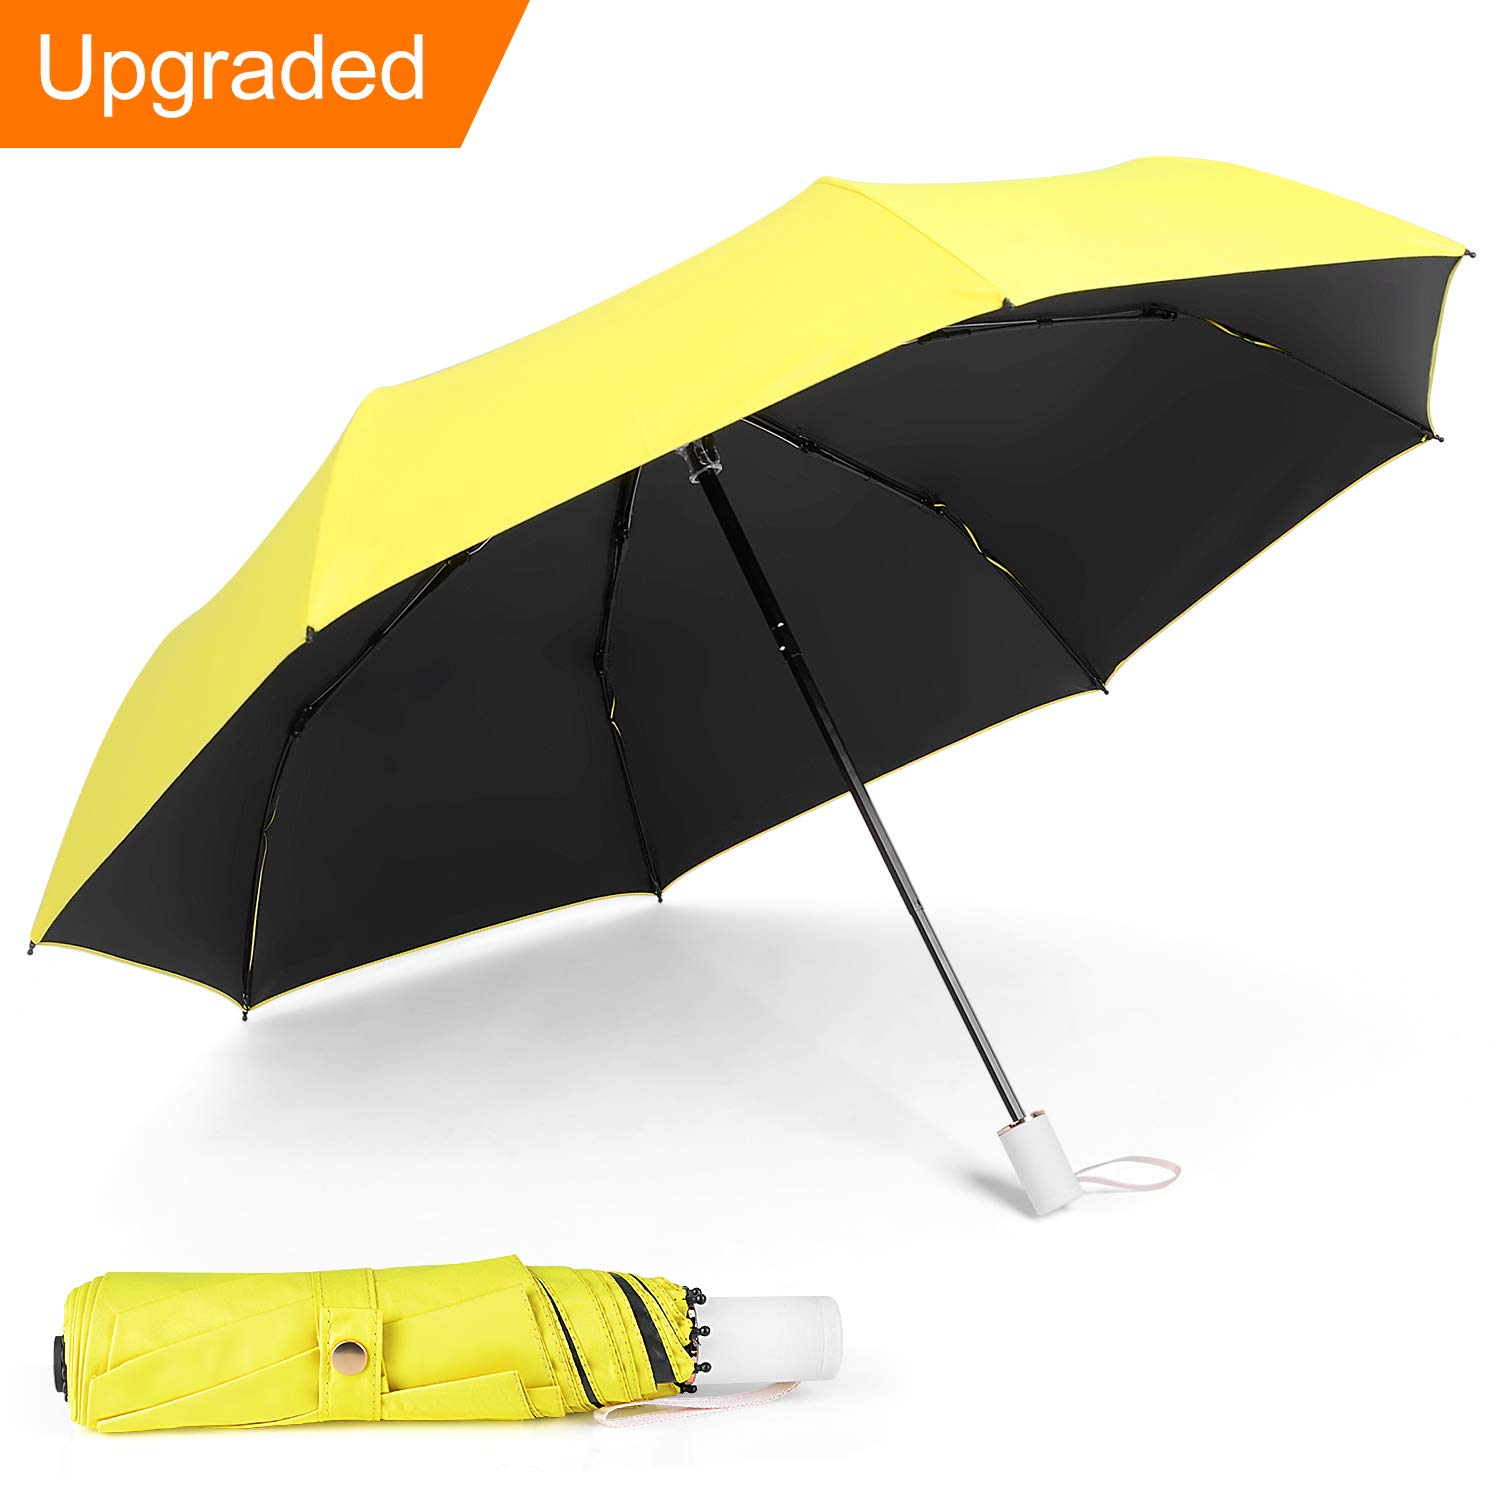 IEOKE Compact Umbrella, Travel Umbrella Windproof Automatic Umbrella With Sleeve Auto Open/Close Foldable Lightweight for easy carry -10 Ribs(Black)